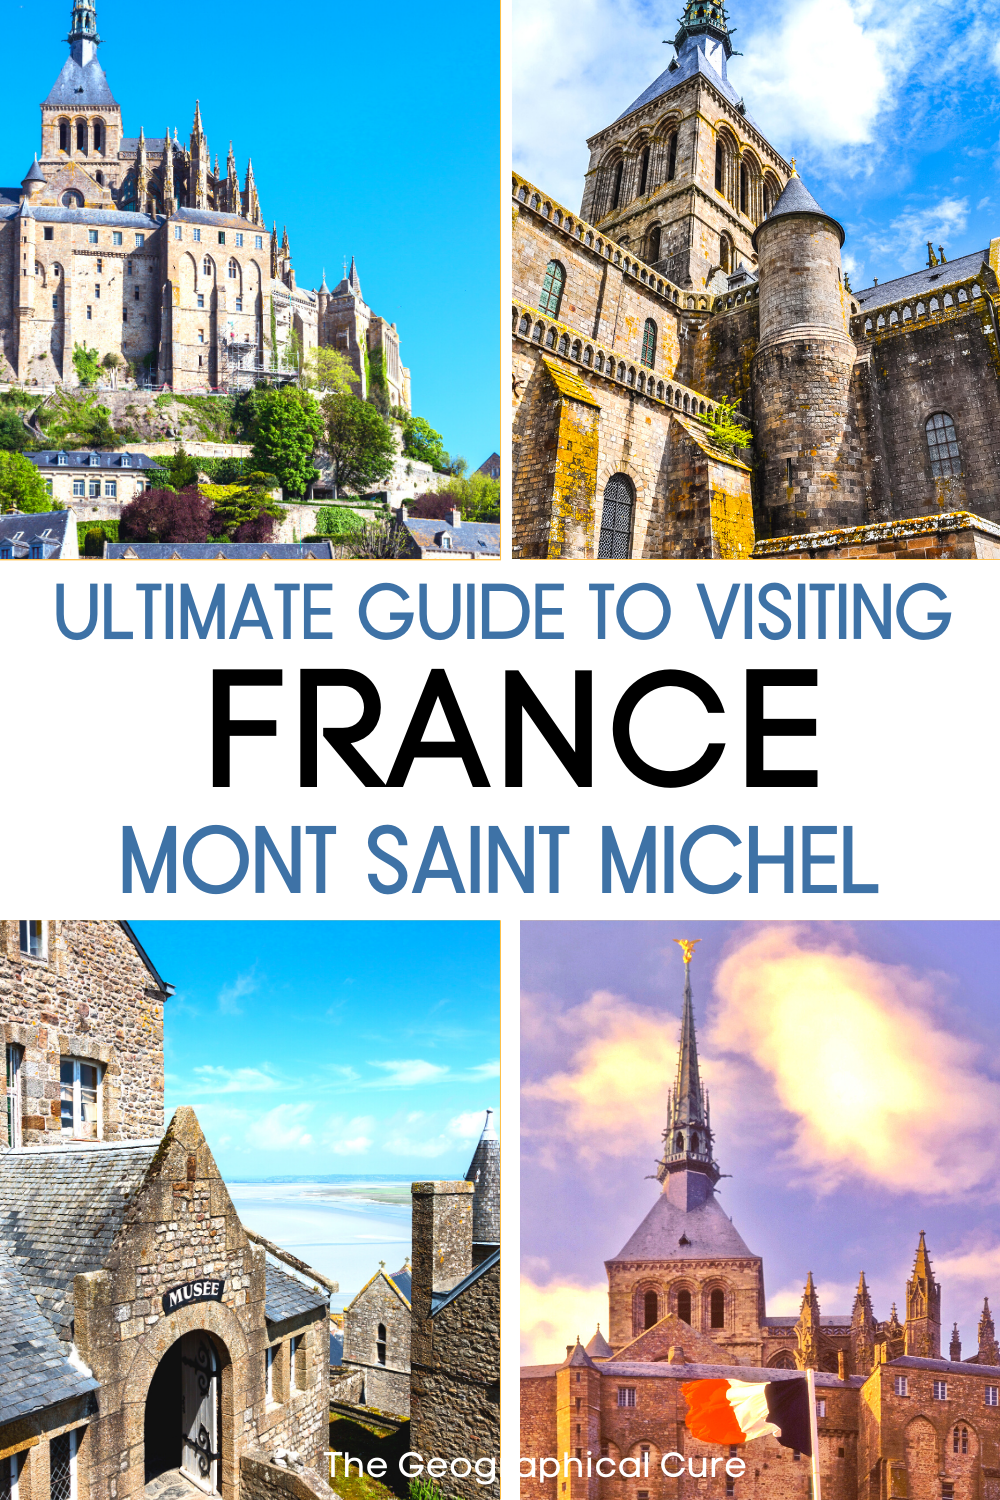 guide and tips for visiting Mont Saint-Michel